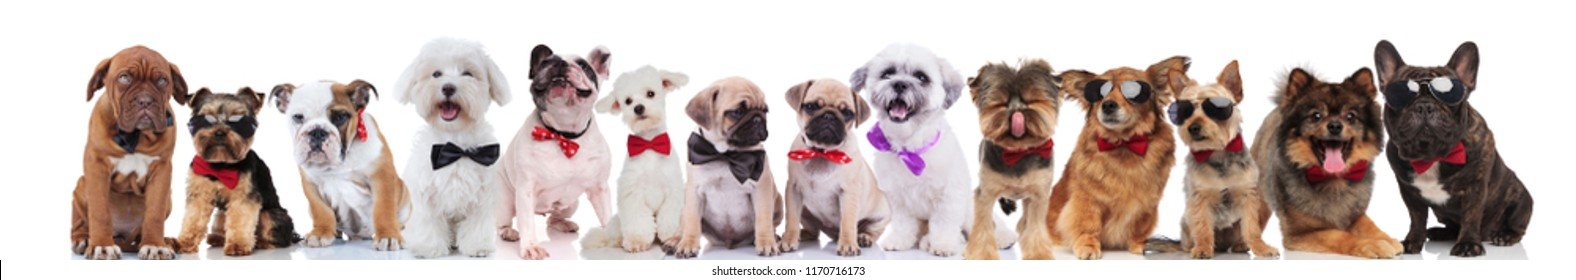 large team of cute stylish dogs of different breeds wearing bowties and sunglasses, standing, sitting and lying on white background